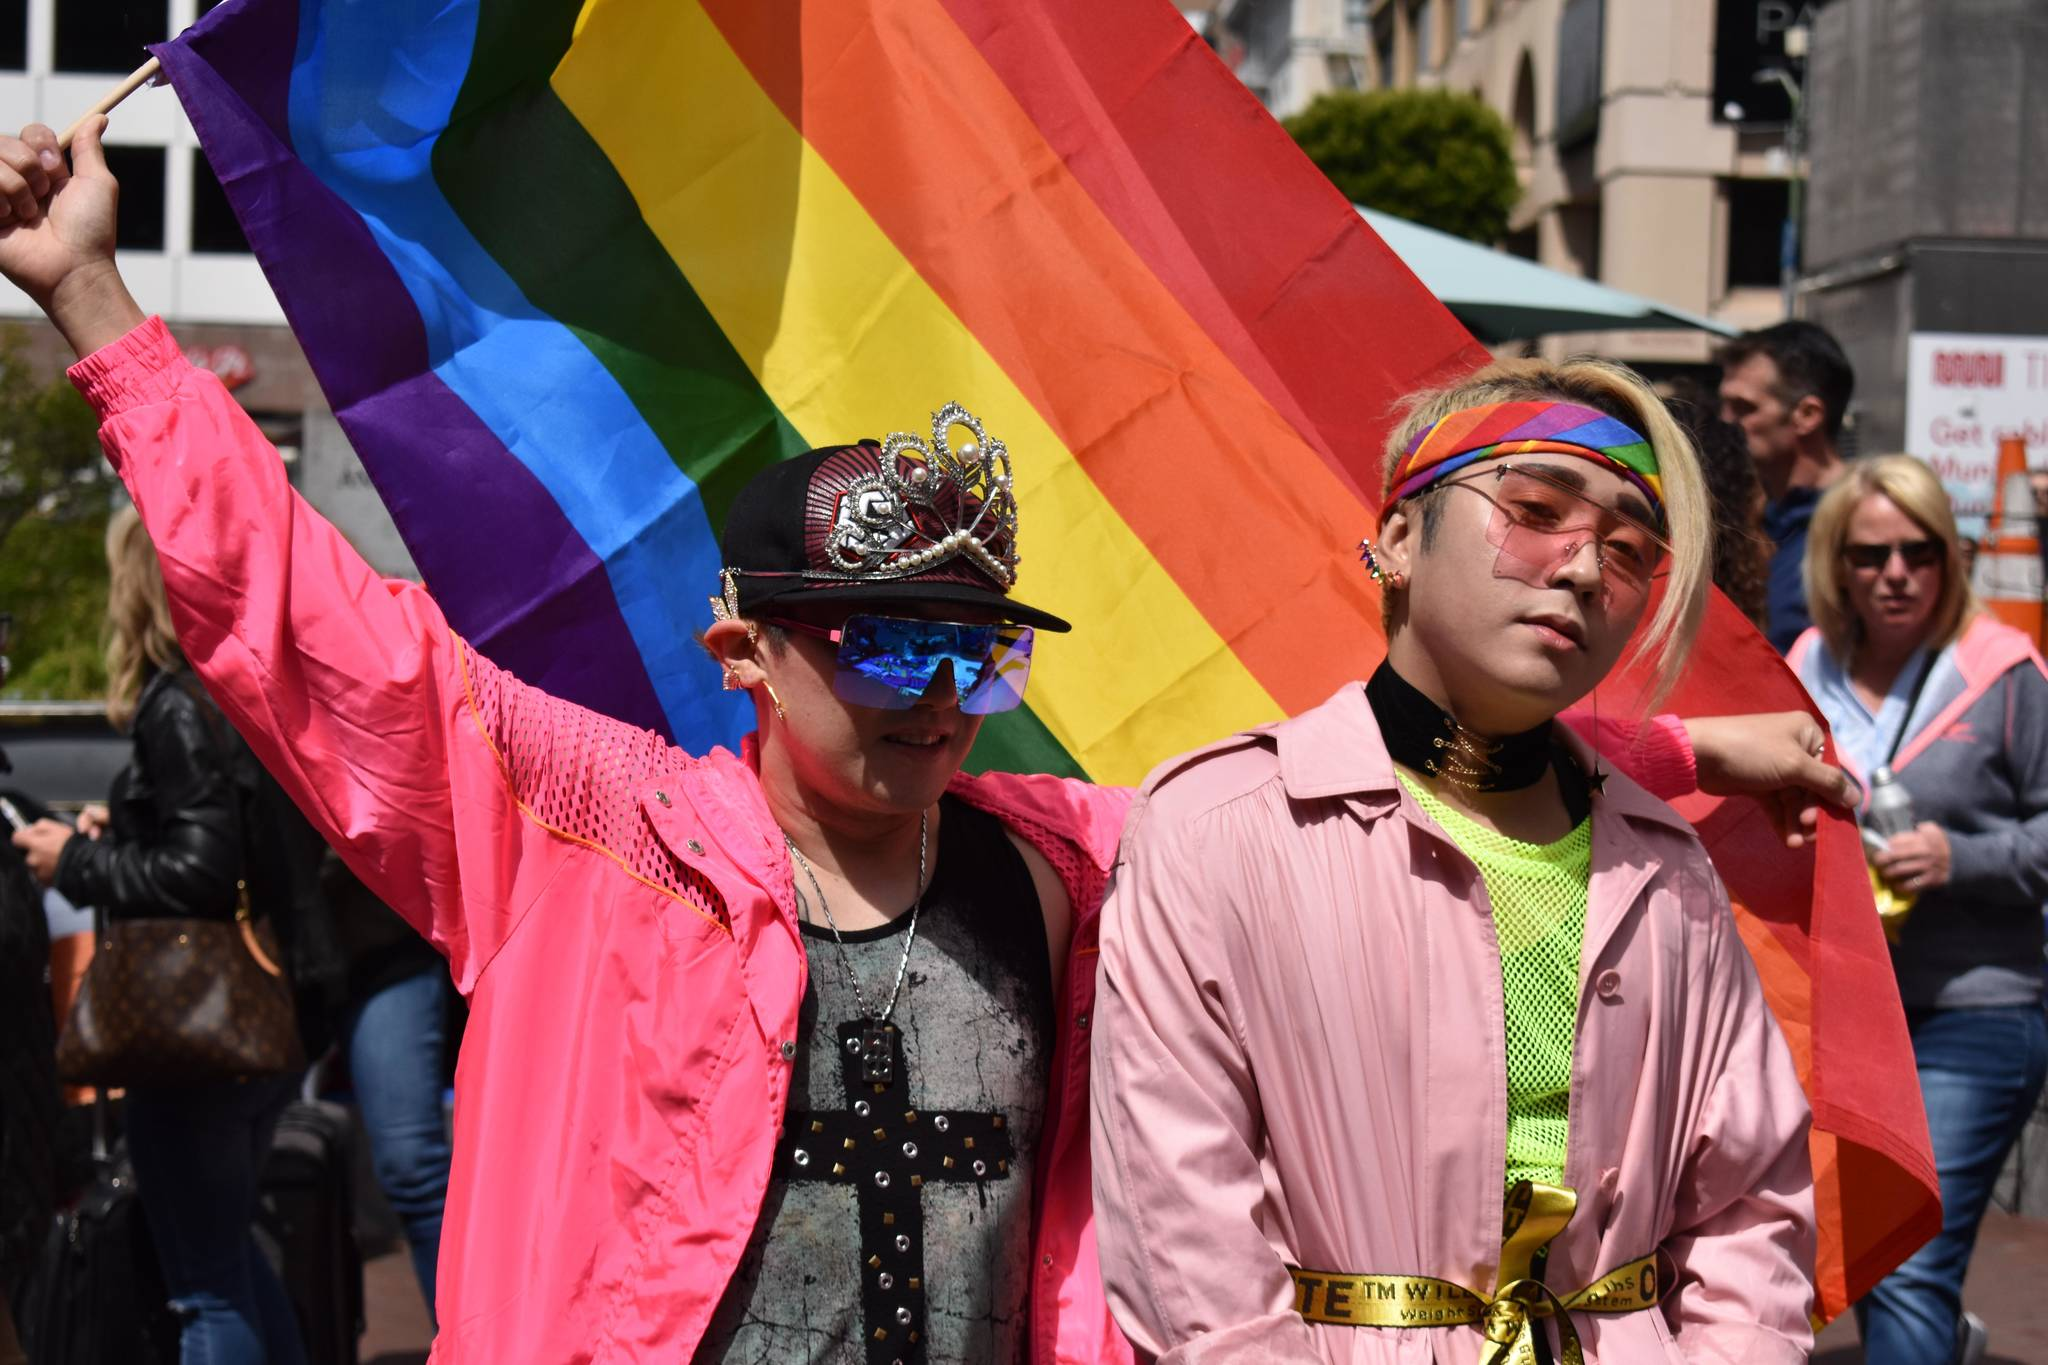 Parade goers stand with a rainbow flag on Market Street for the SF Pride Parade on Sunday, June 30, 2019. (Lola Chase/ Special to S.F. Examiner)